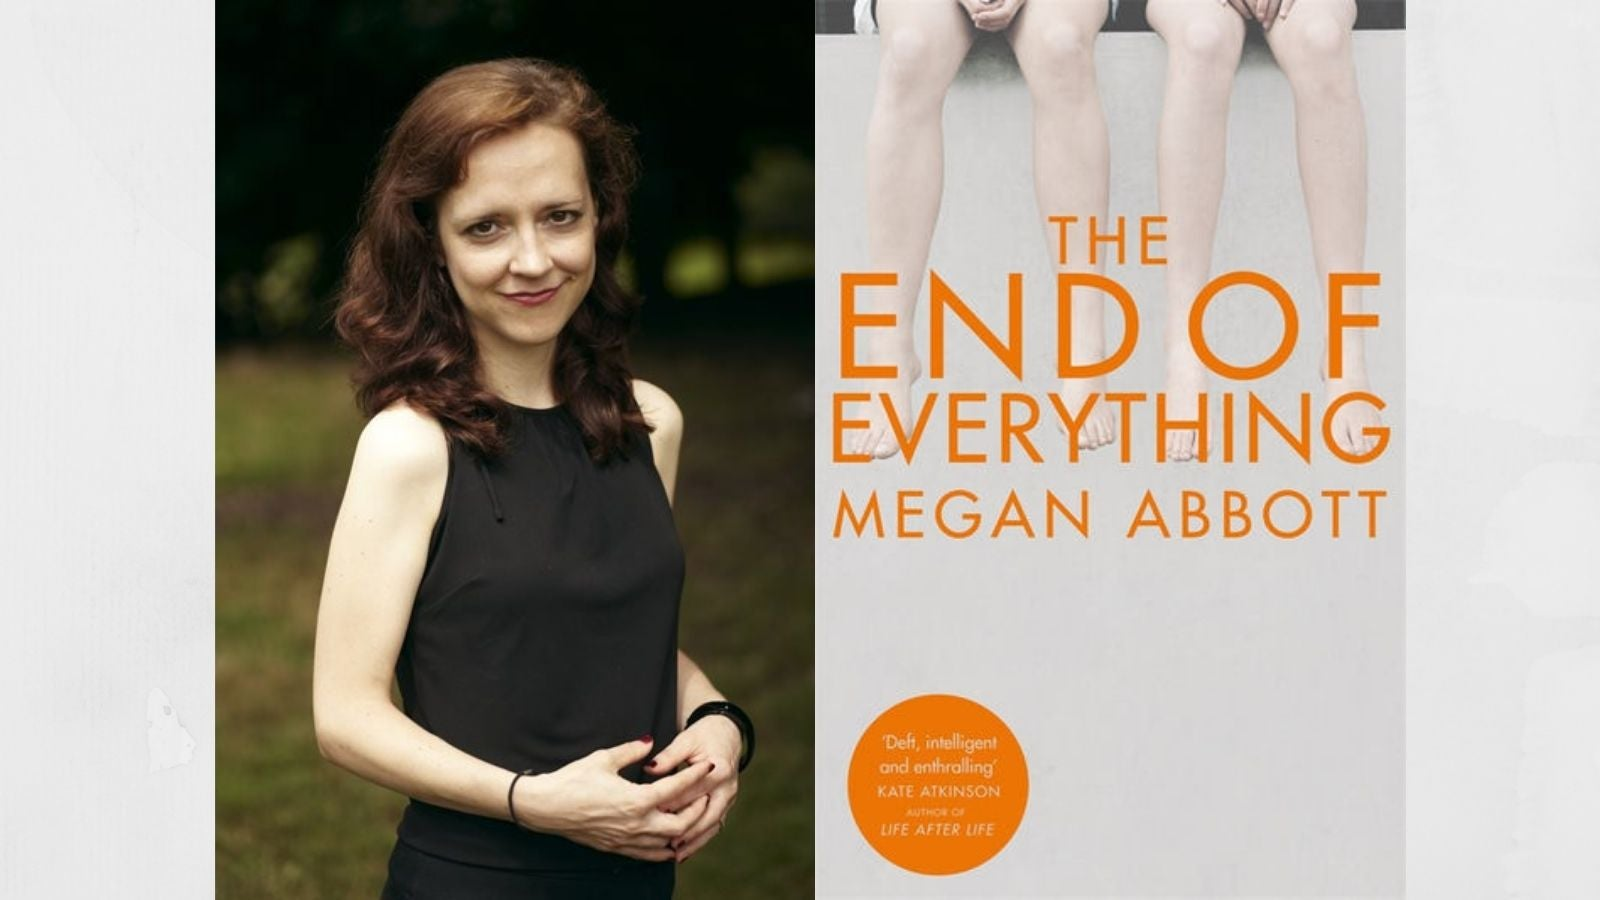 Megan Abbott author photo and book cover for The End of Everything